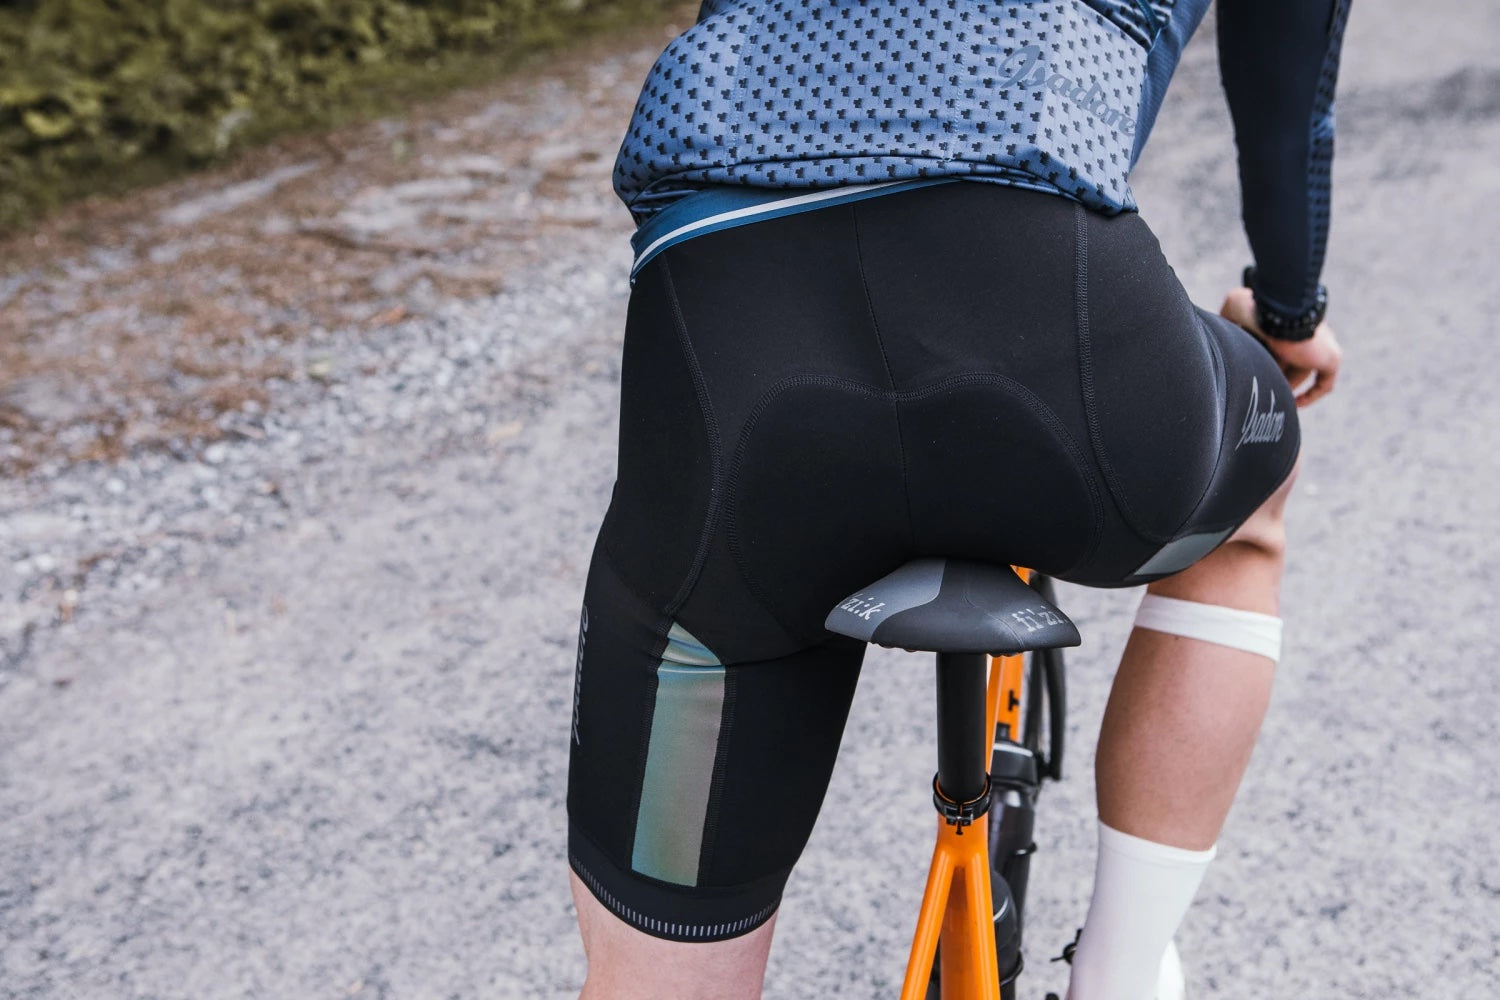 Comfortable Thermal Bib Shorts for Cold Days